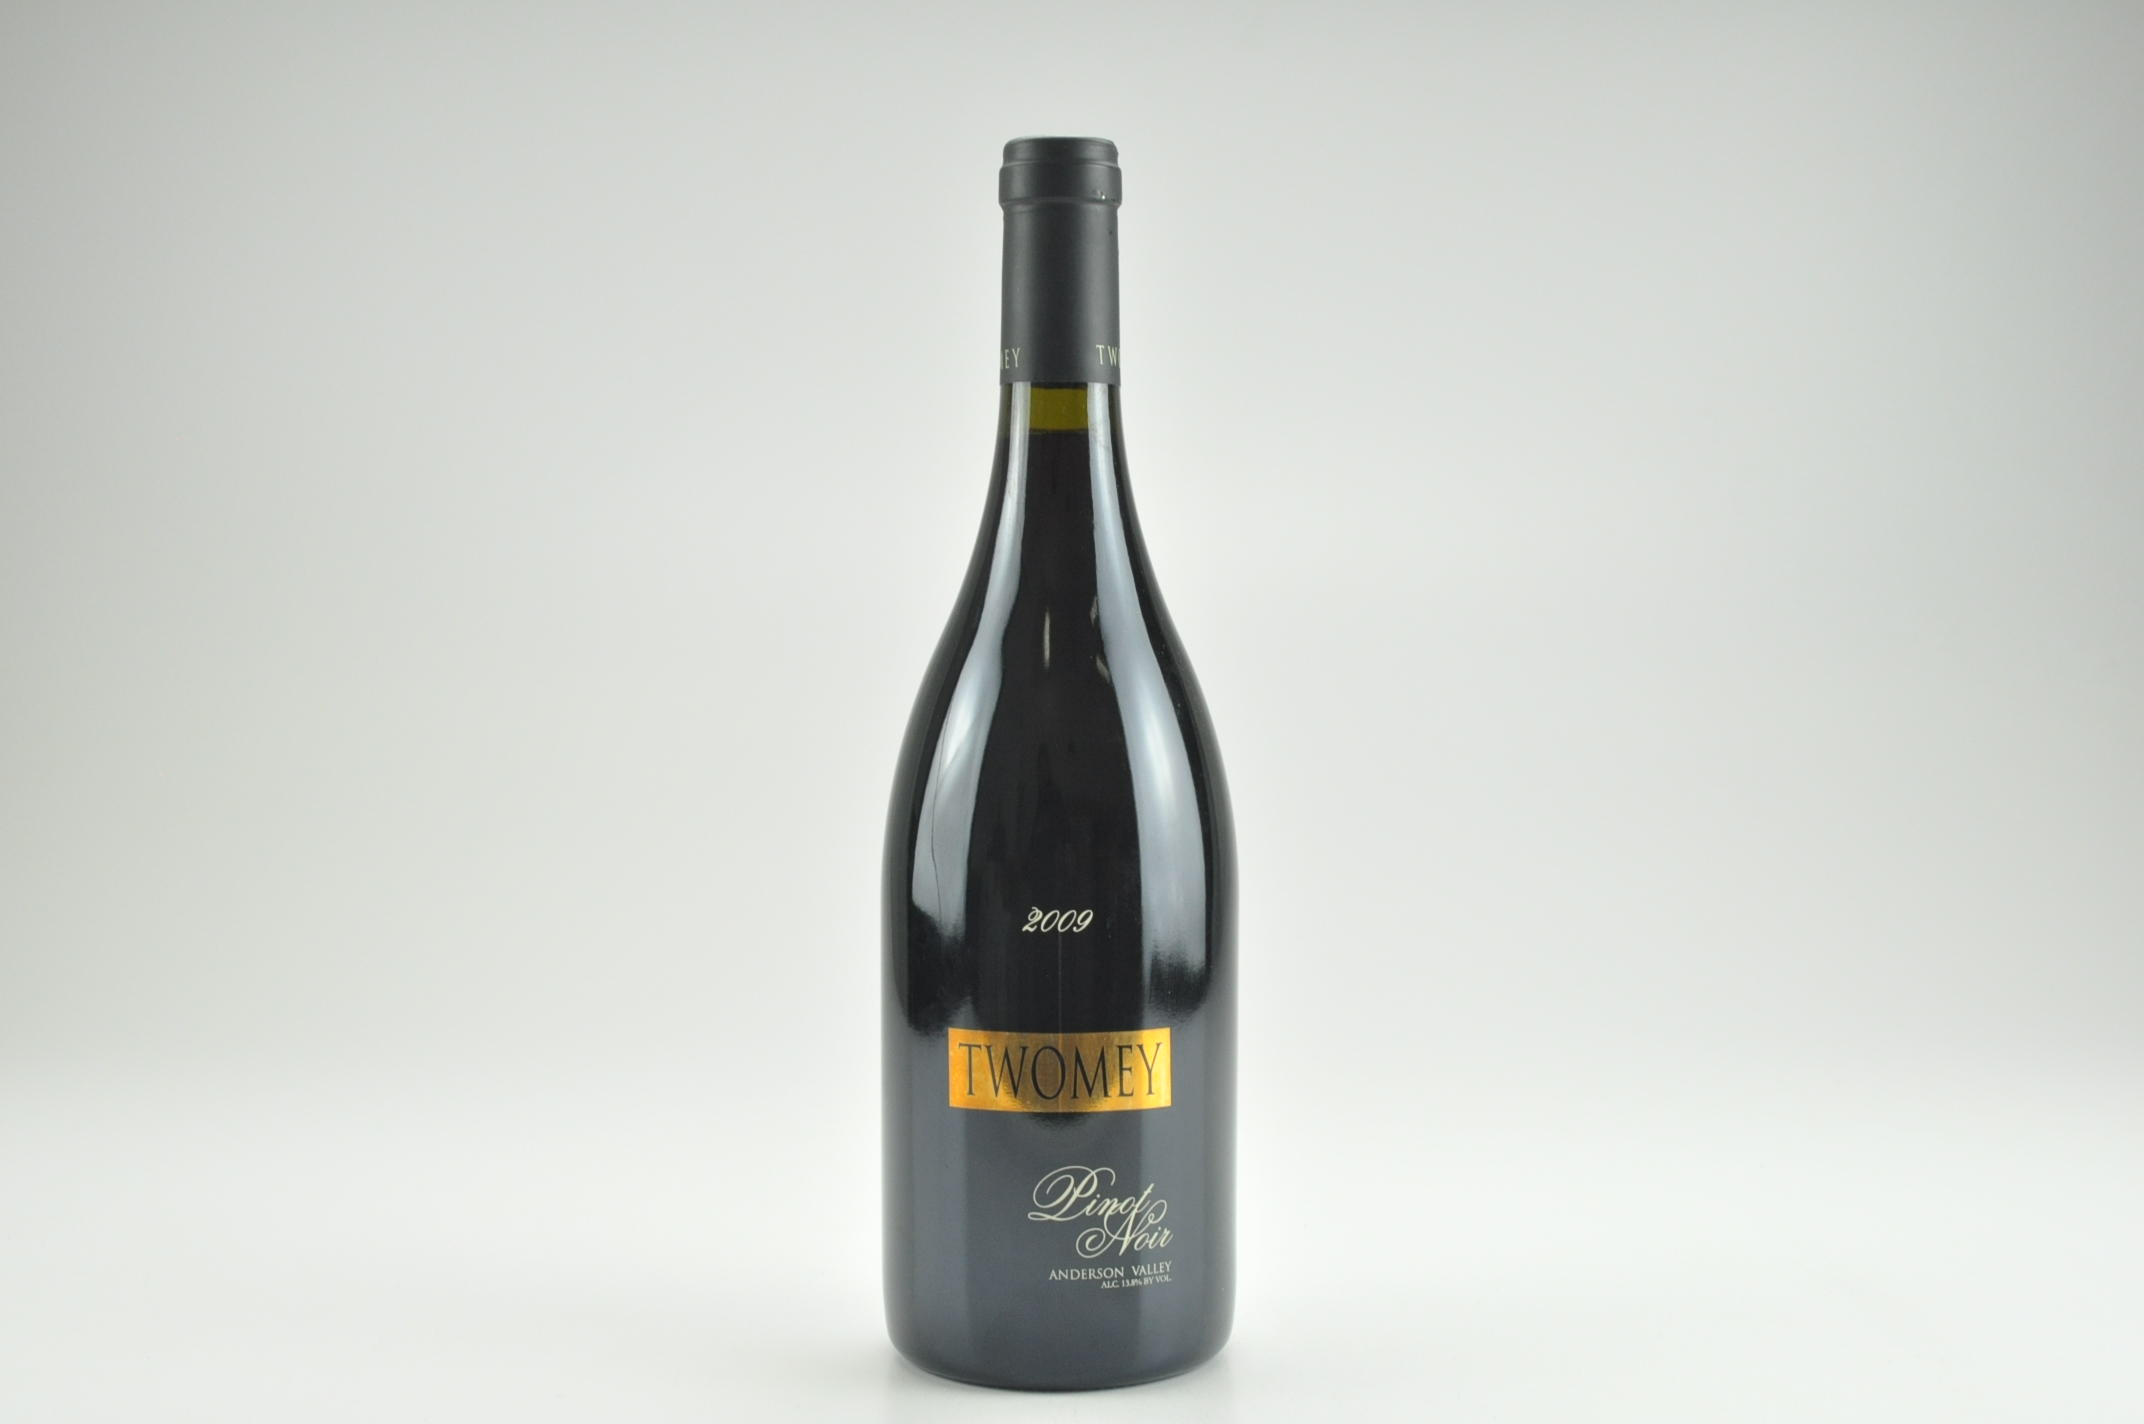 2009 Twomey Cellars Pinot Noir, Anderson Valley